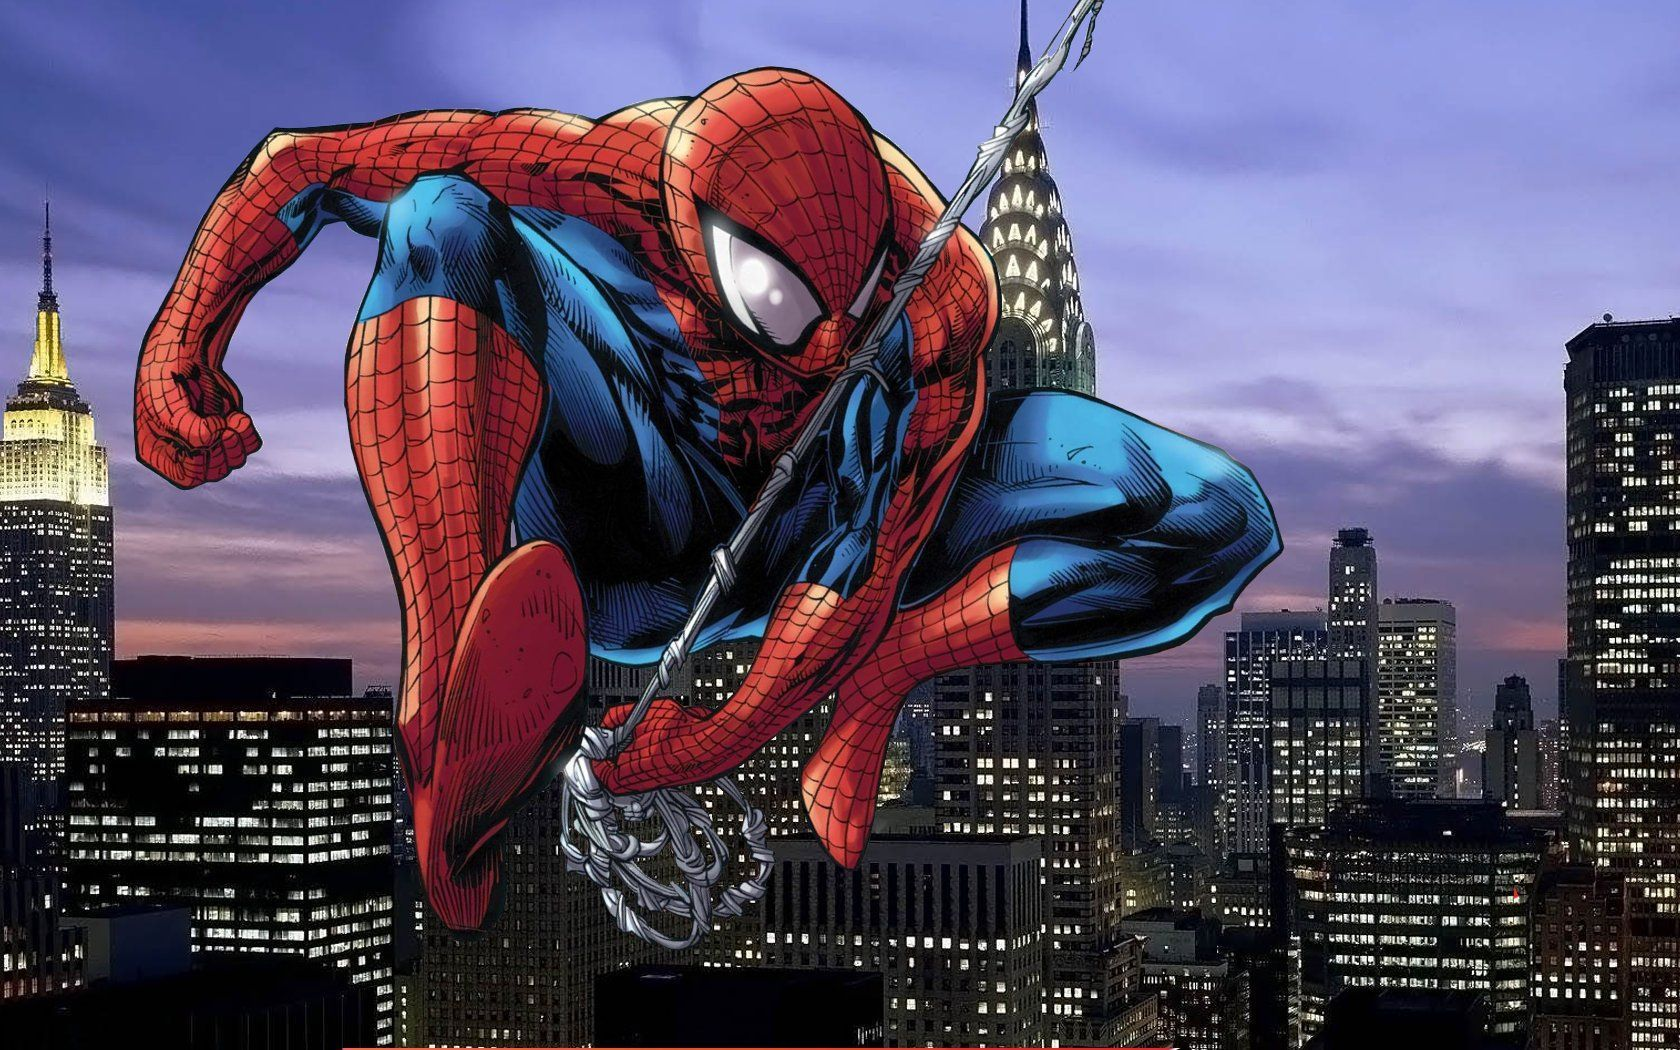 Spiderman Cartoon Wallpapers - Wallpaper Cave